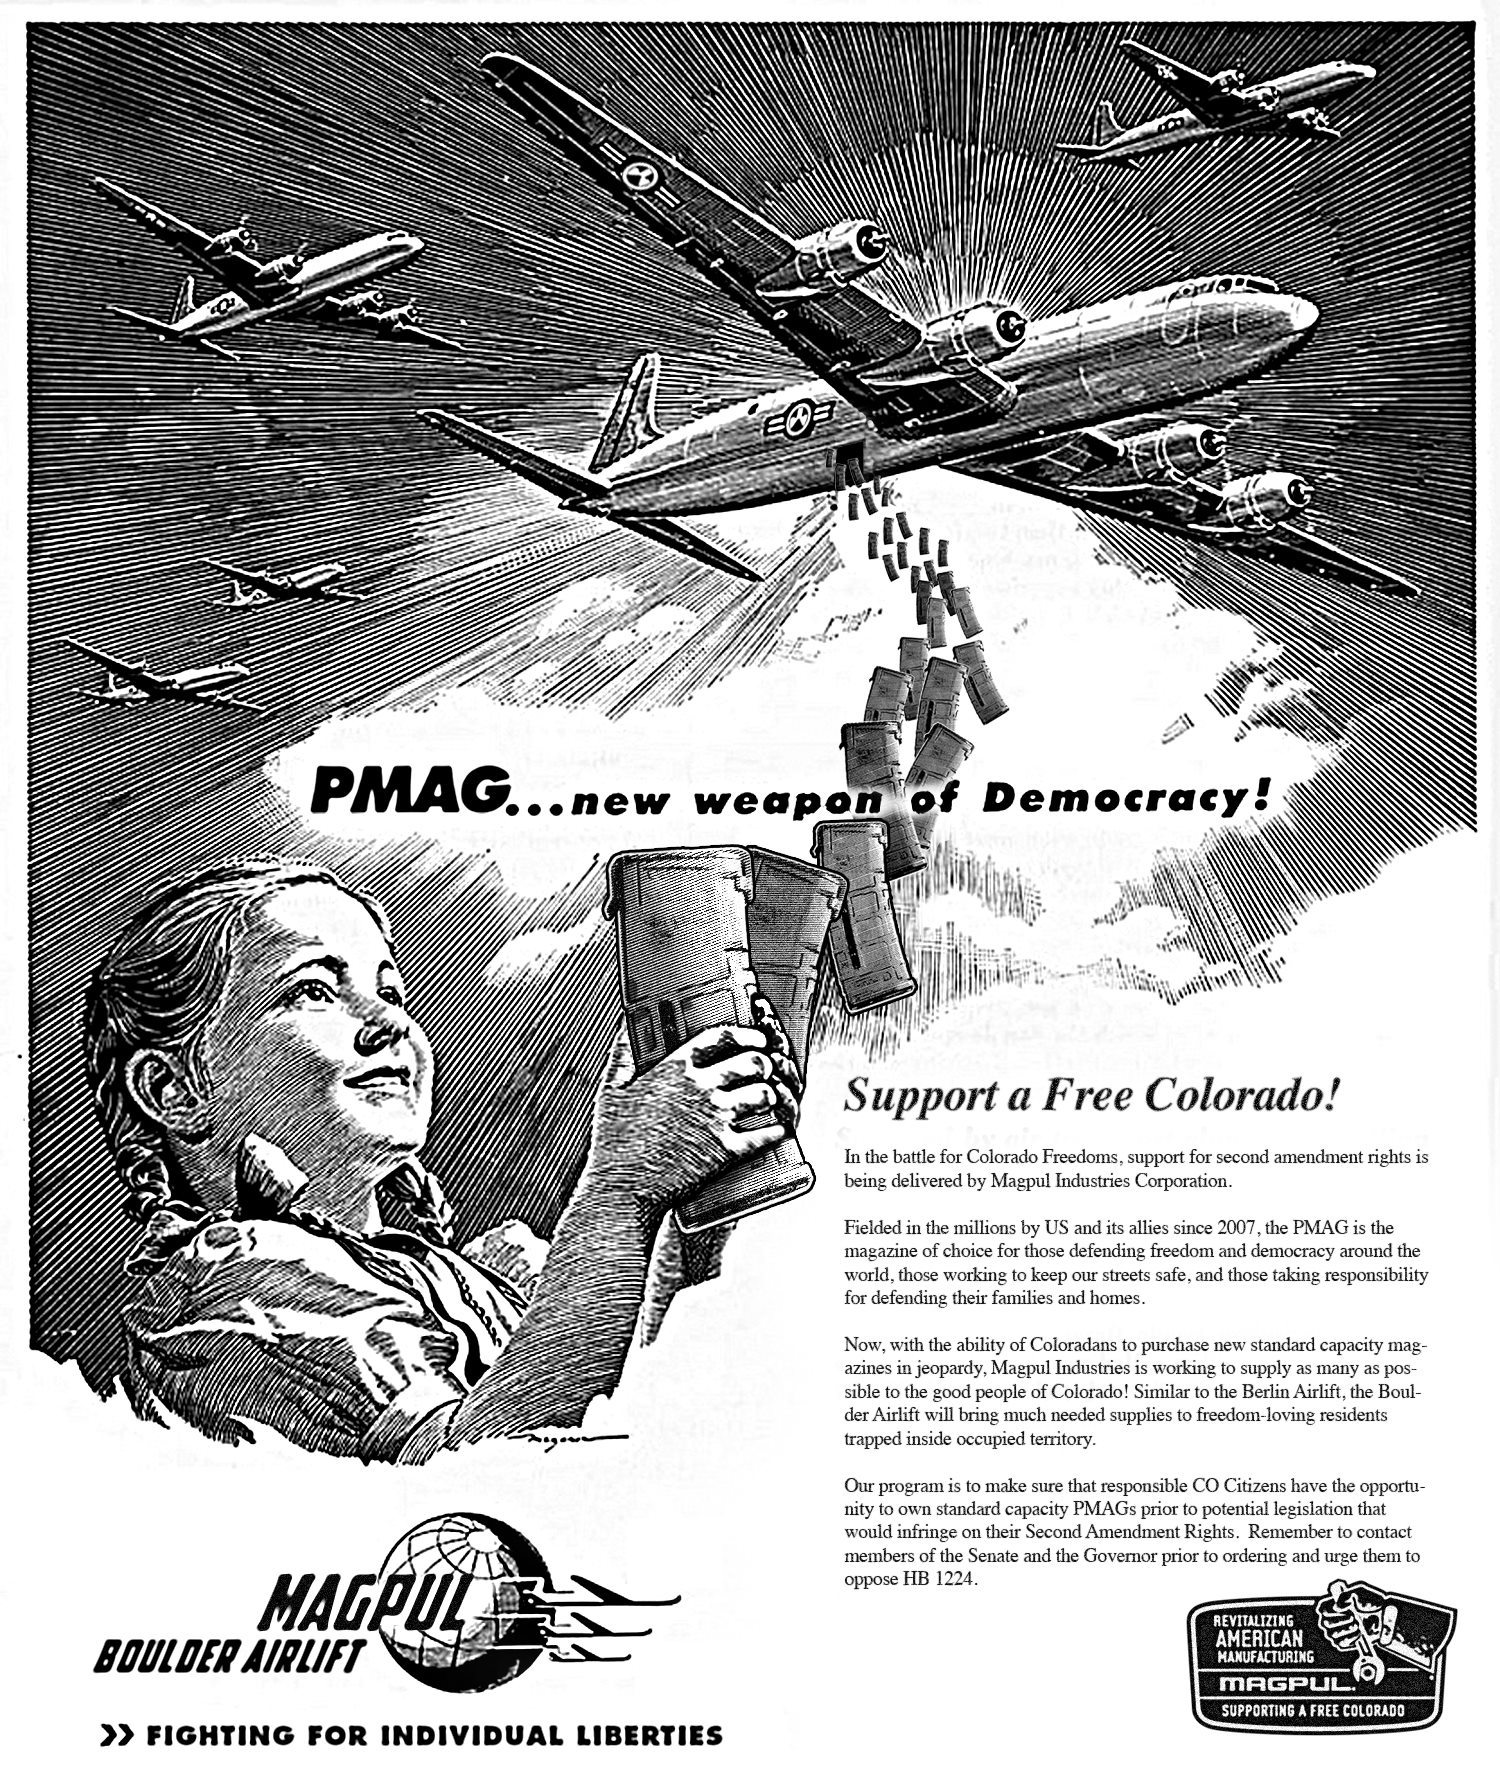 MagPul Airlift Ad Poster PMAG Polymer 30 Round Magazine 1 MagPul PMAGs Falling from the Sky: MagPul Boulder Airlift Operation Delivering Freedom (through PMAG 30 Round Magazines) to Coloradans!